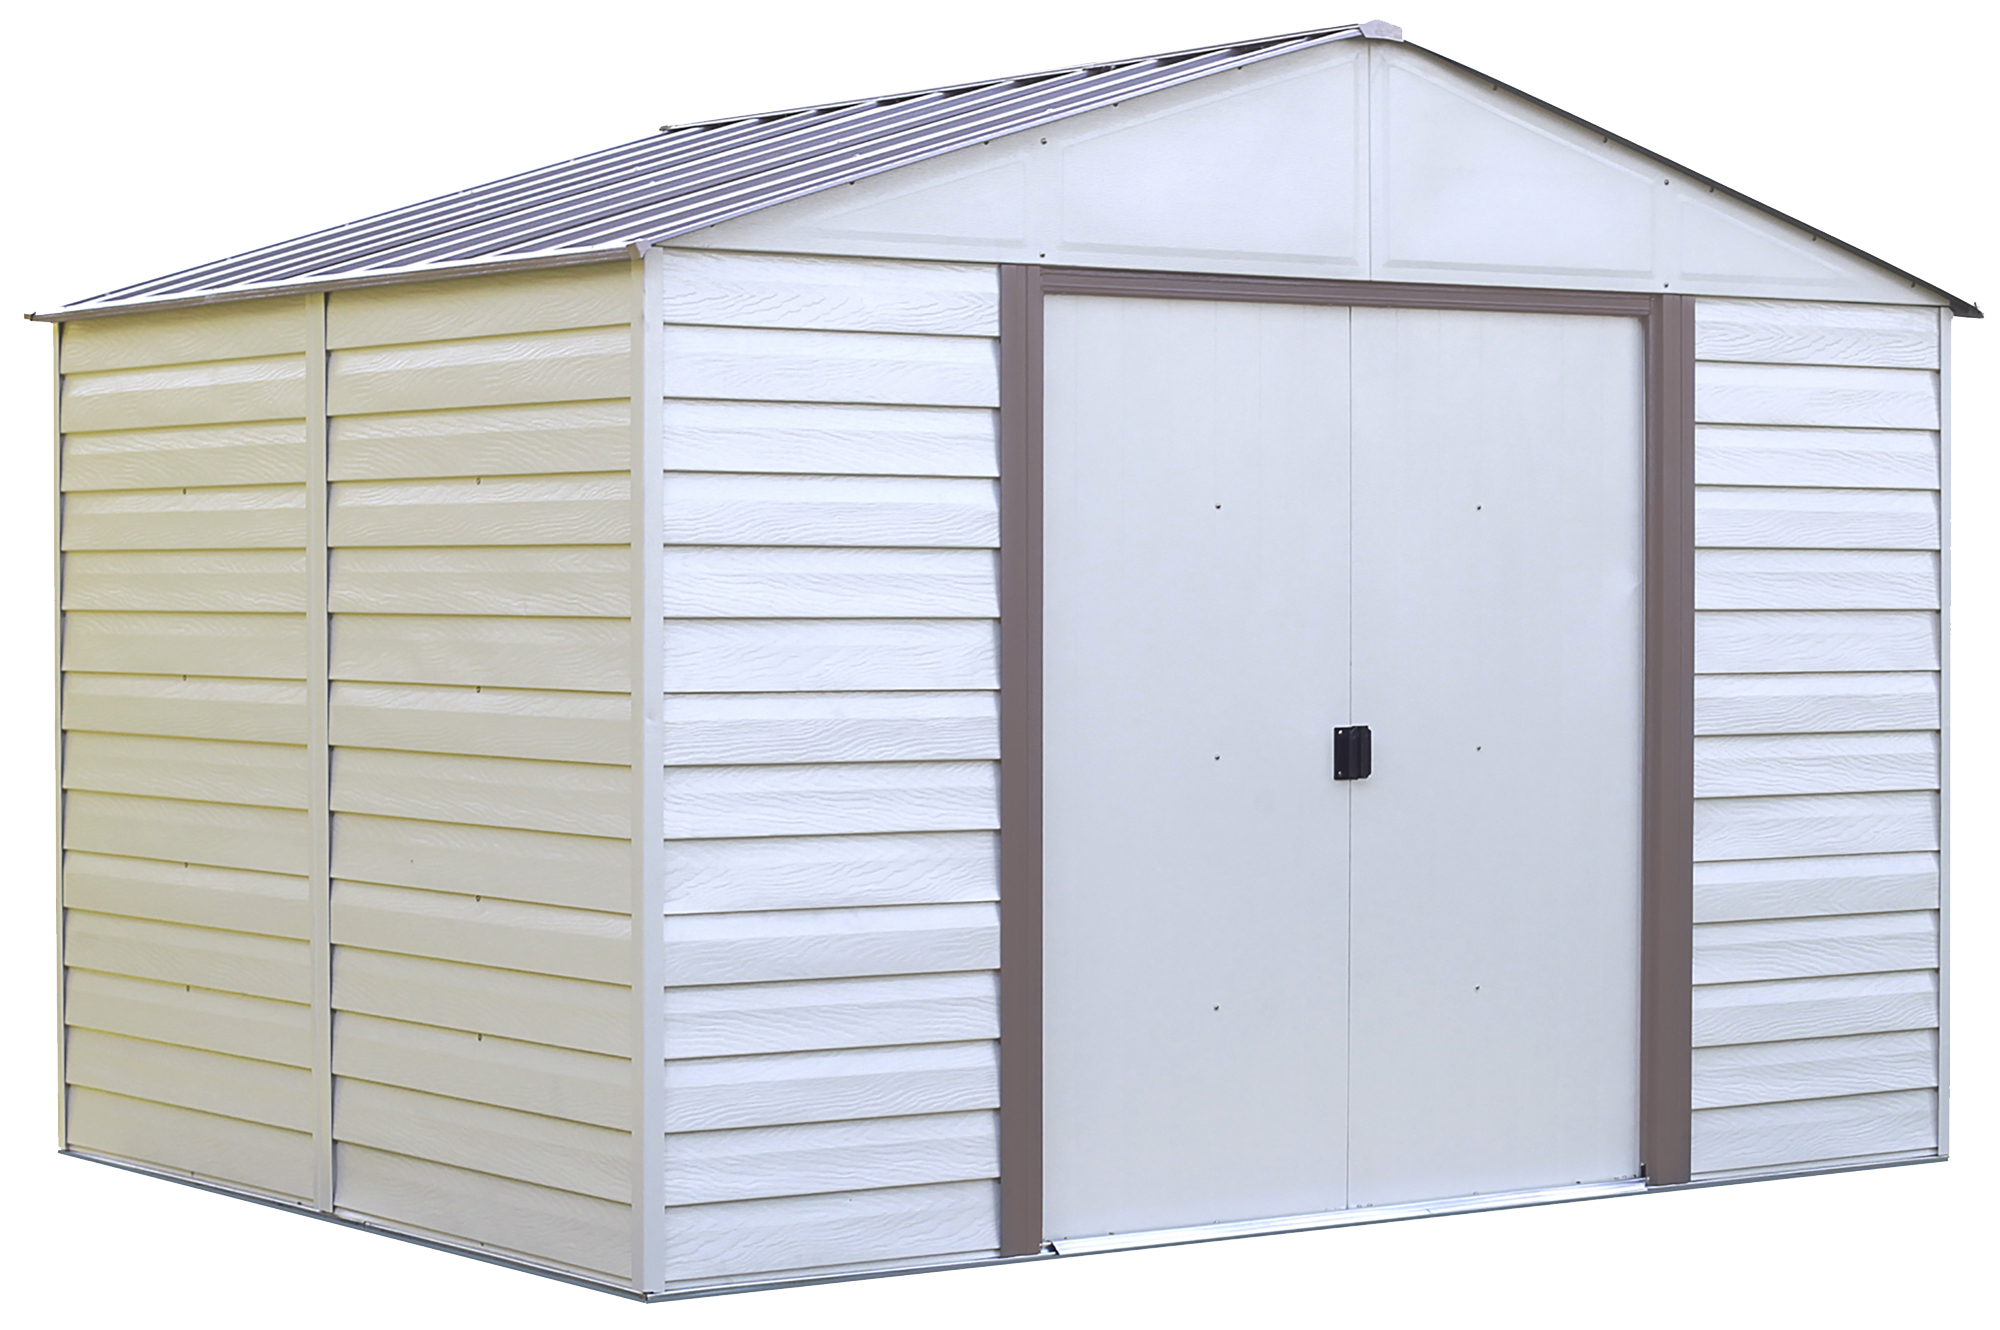 Vinyl Milford 10 X 12 Ft. Steel Storage Shed Grey Bark/Almond